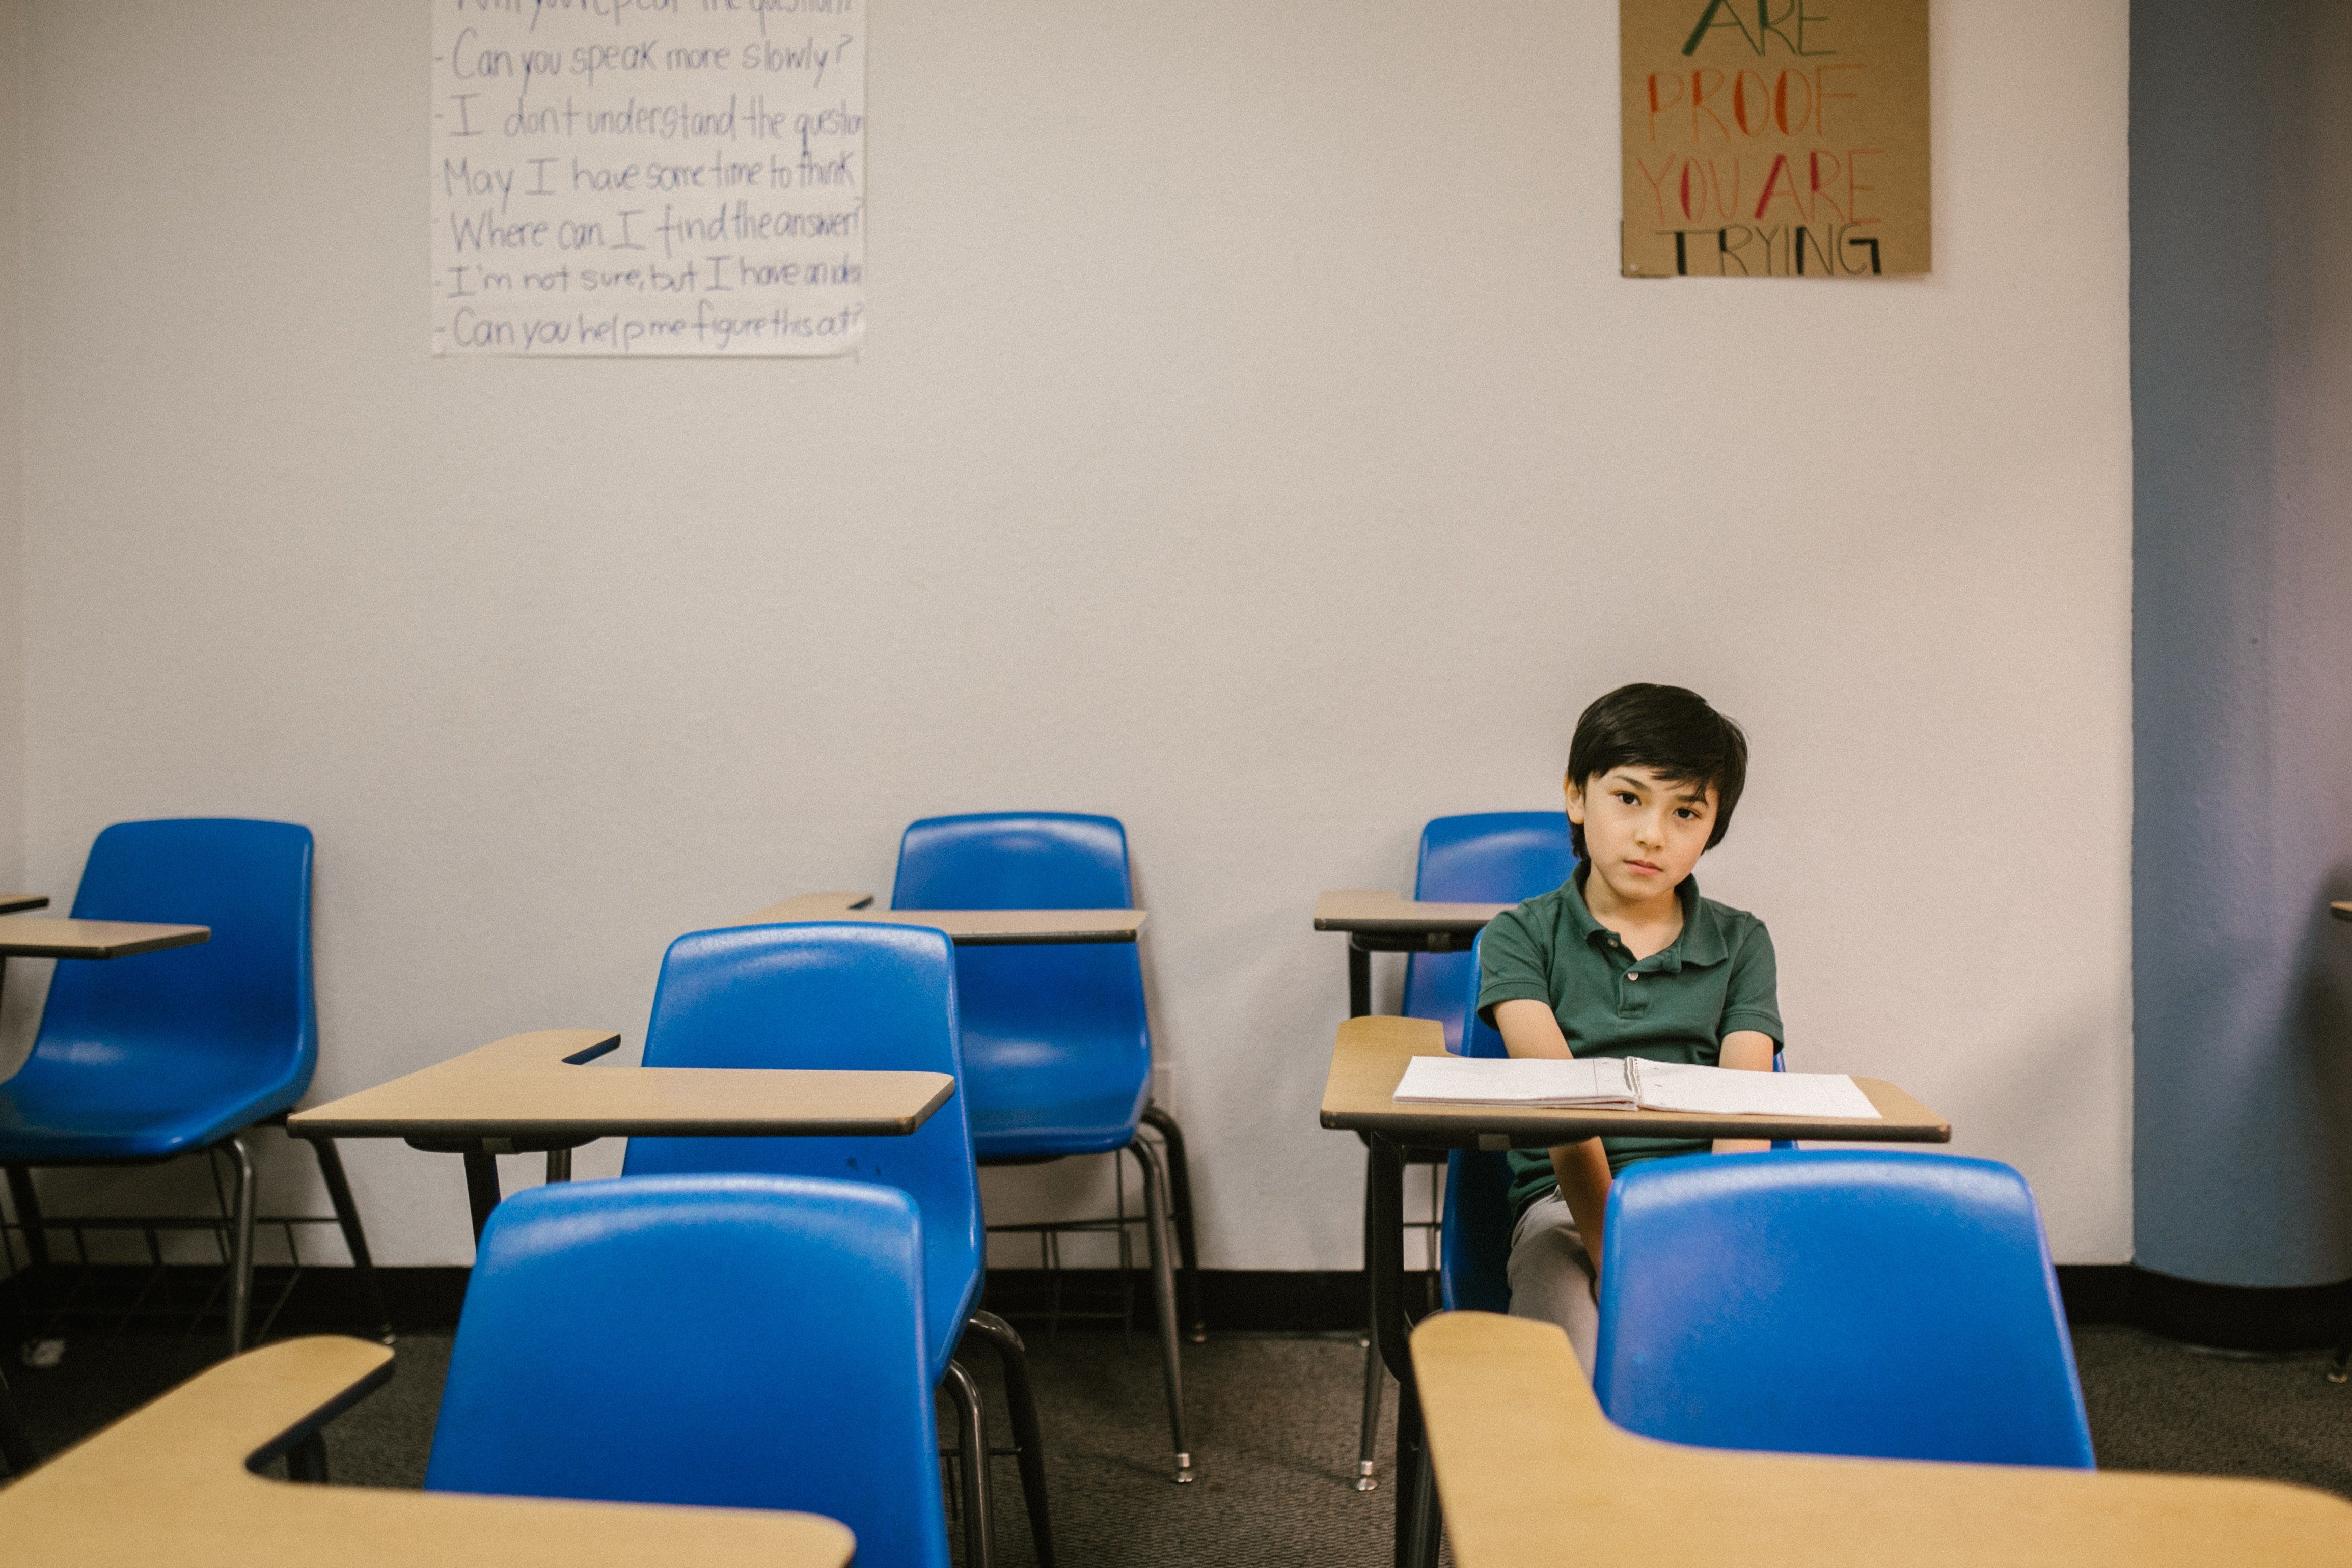 Boy sitting on his desk looking lonely   Photo: Pexels